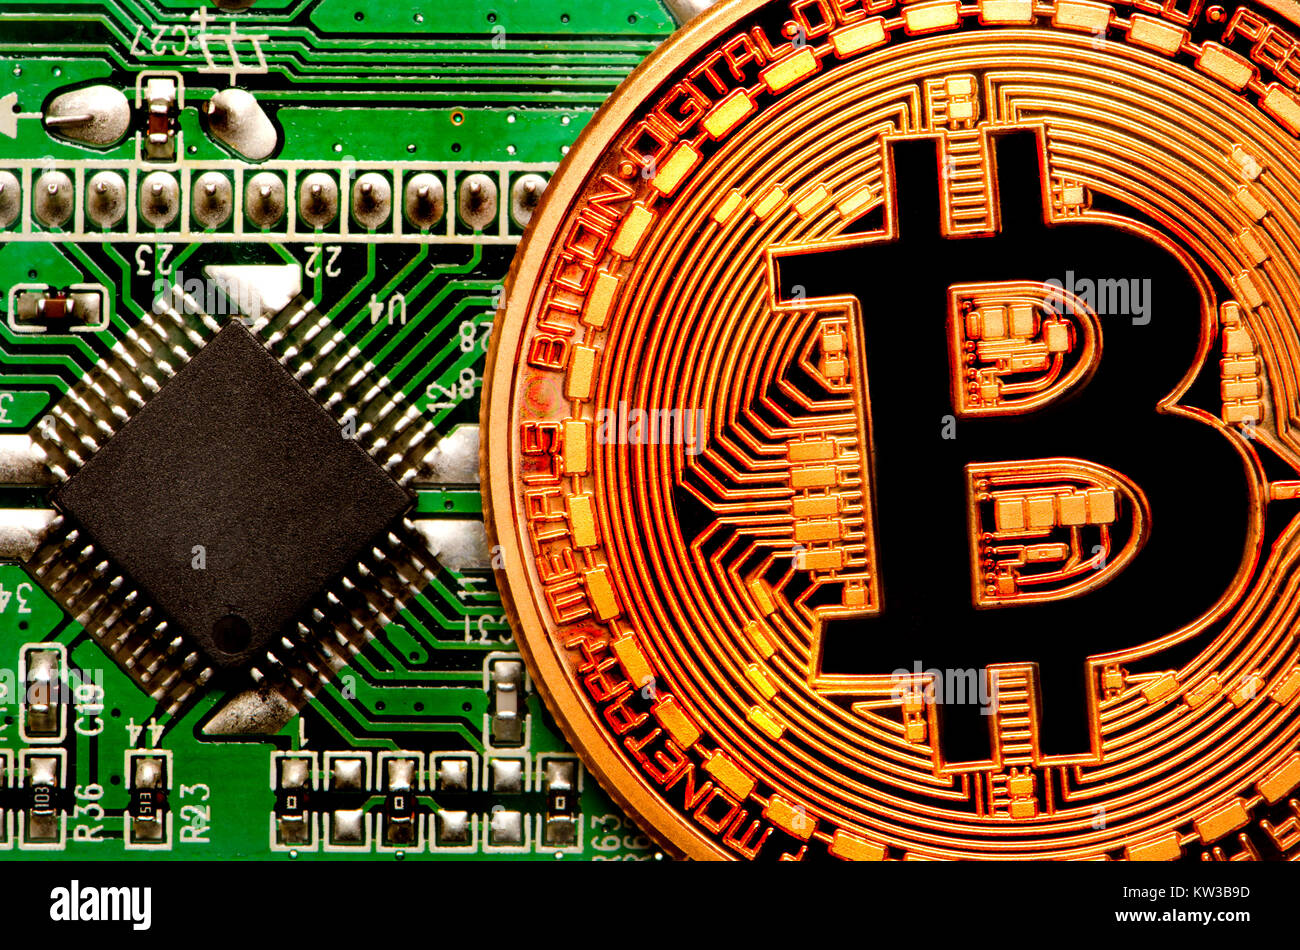 Electronic Board Technology Stock Photos Glass On The Schematic Diagramideal Background Bitcoin Cryptocurrency Payment System Copper Commemorative Round 999 Bullion Currency